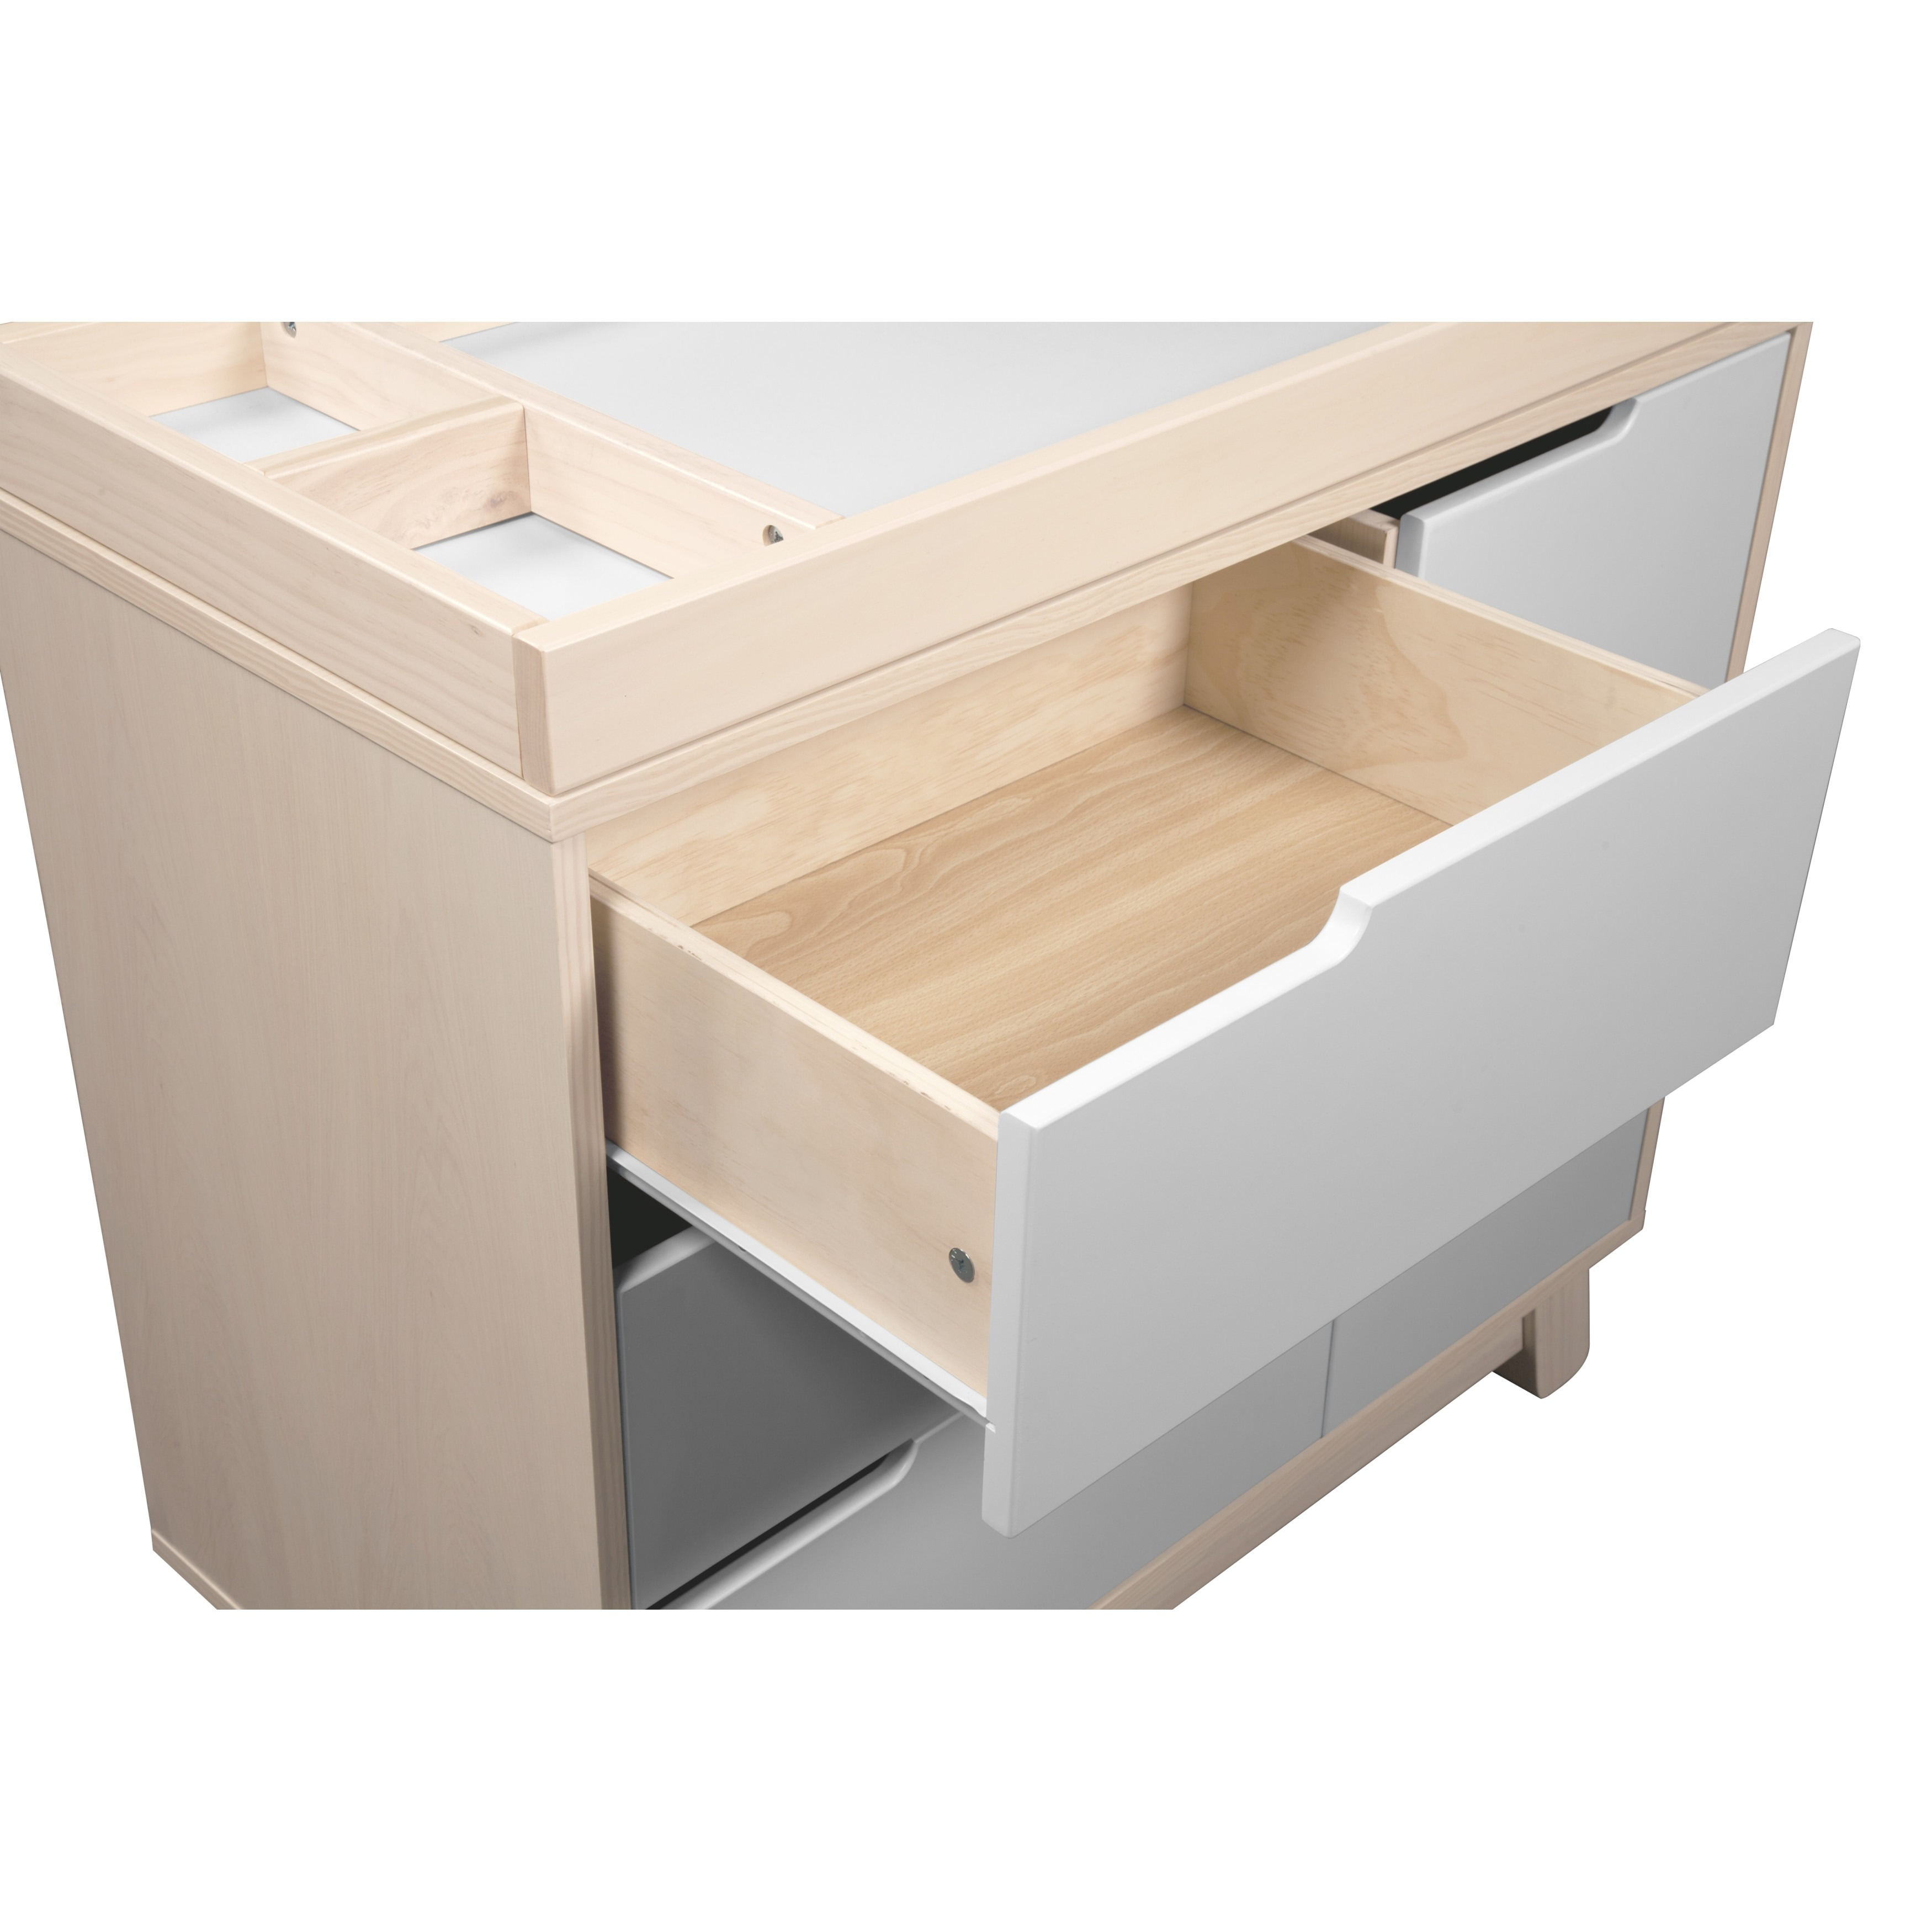 Shop Babyletto Hudson 3 Drawer Changer Dresser With Removable Changing Tray    Free Shipping Today   Overstock   7641799